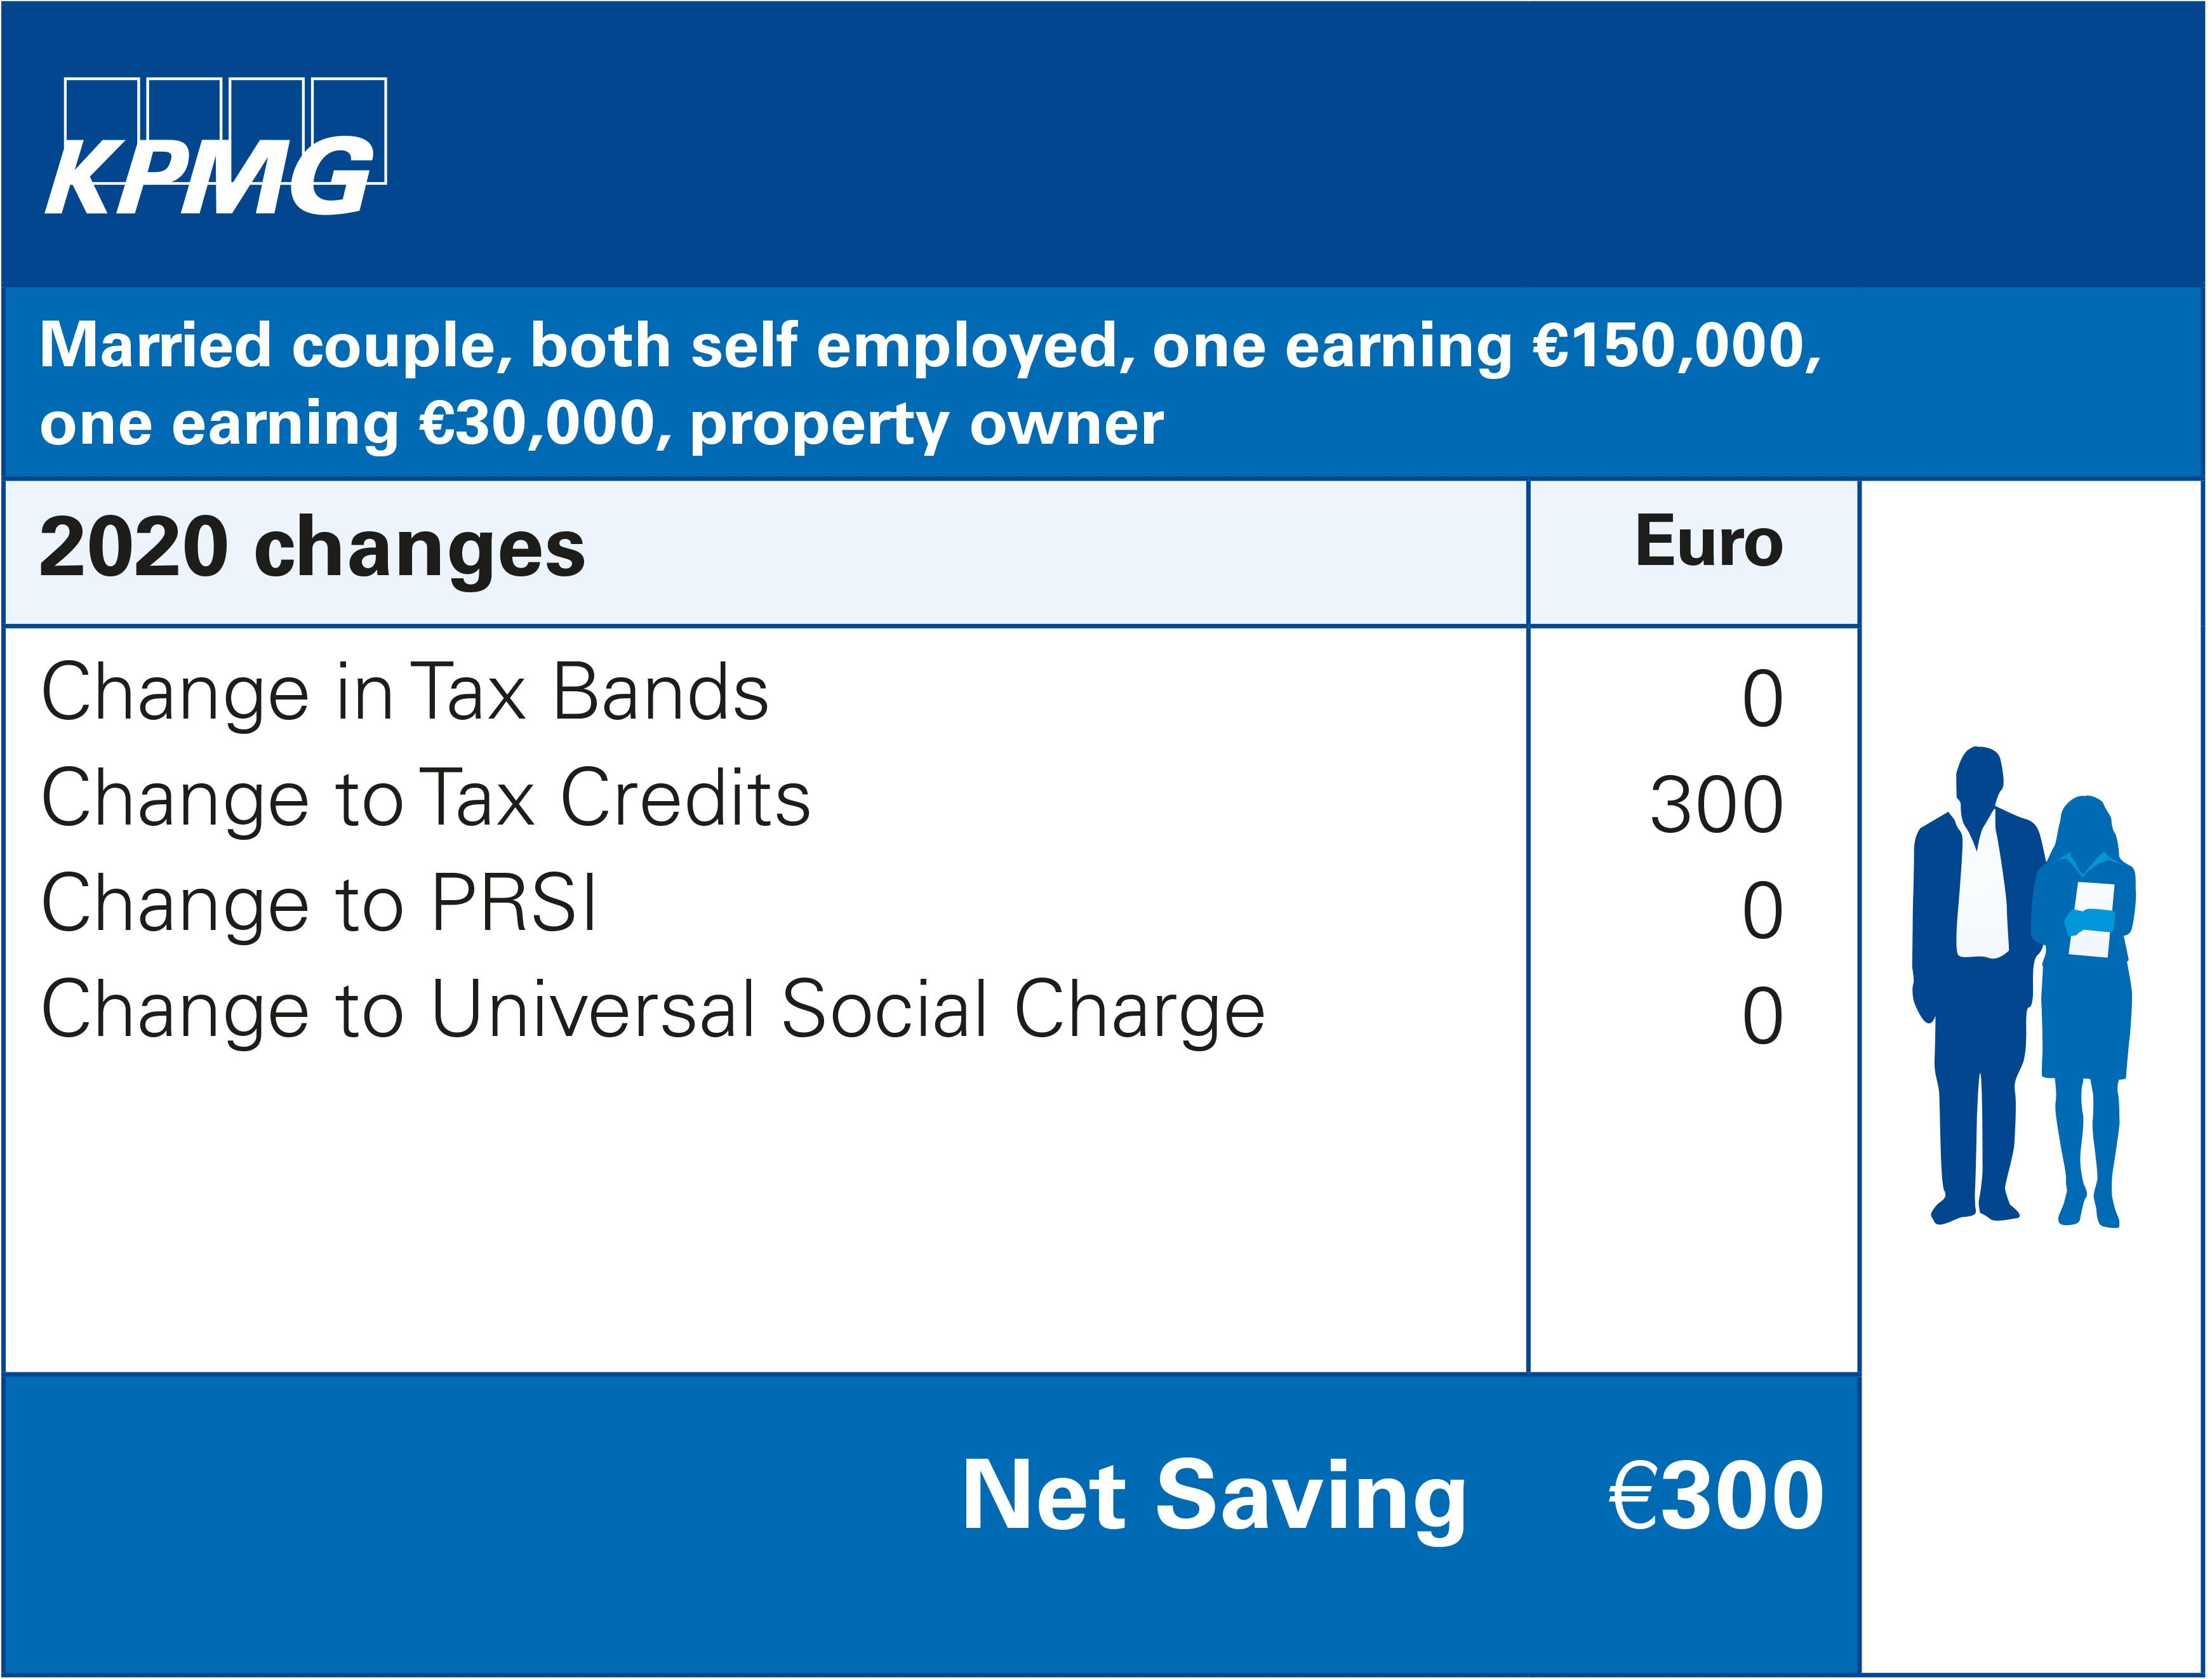 Married couple, both self employed, one earning €150,000, one earning €30,000, property owner